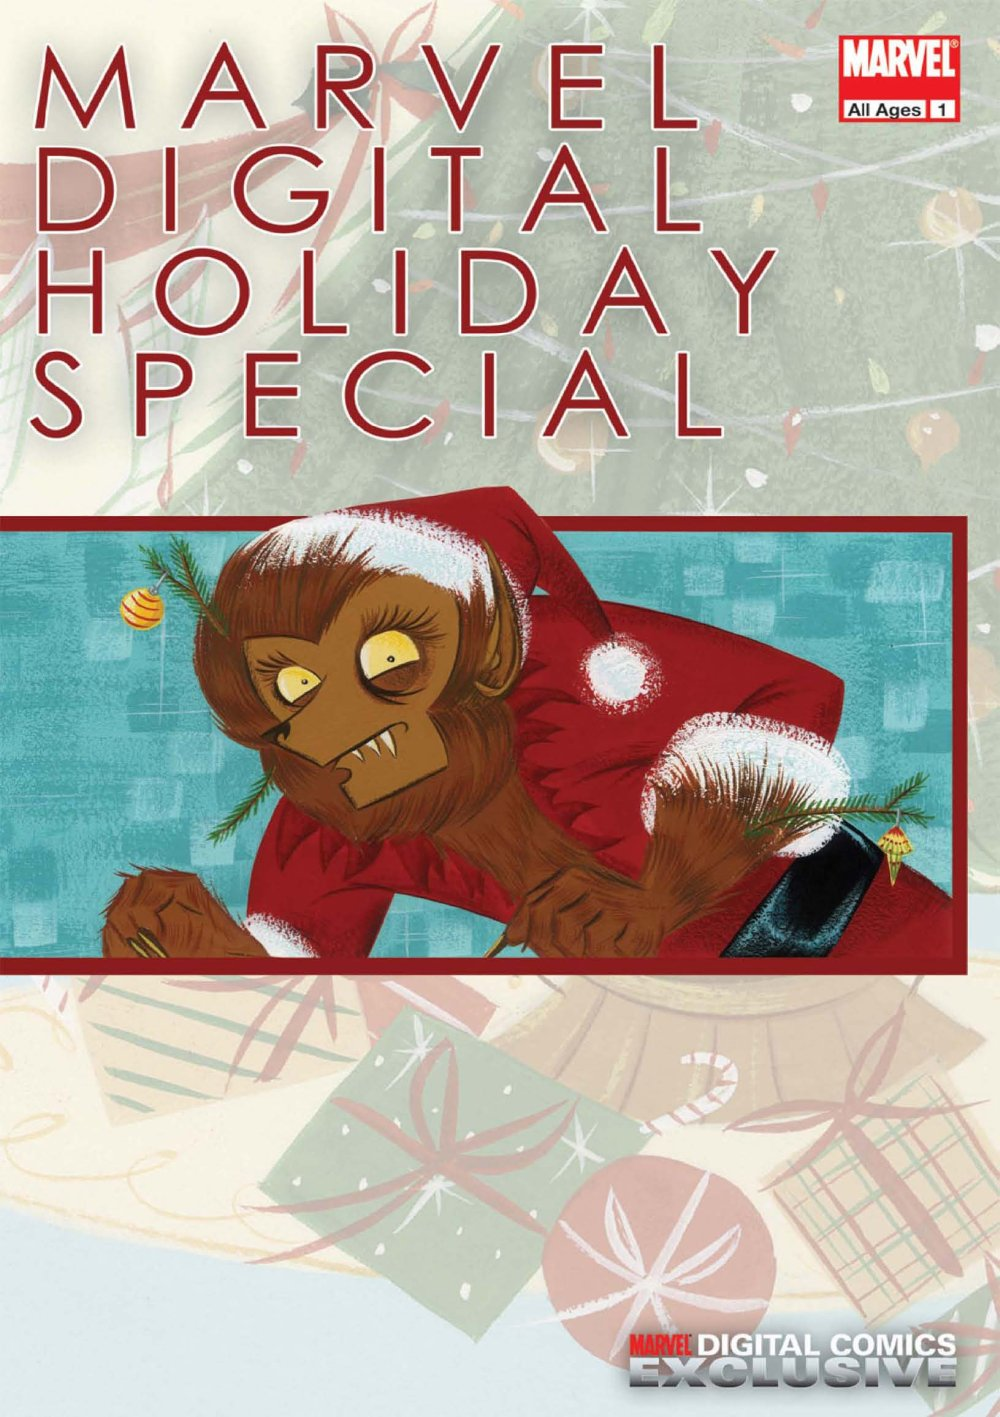 Marvel Digital Holiday Special [Marvel] OS1 0001.jpg